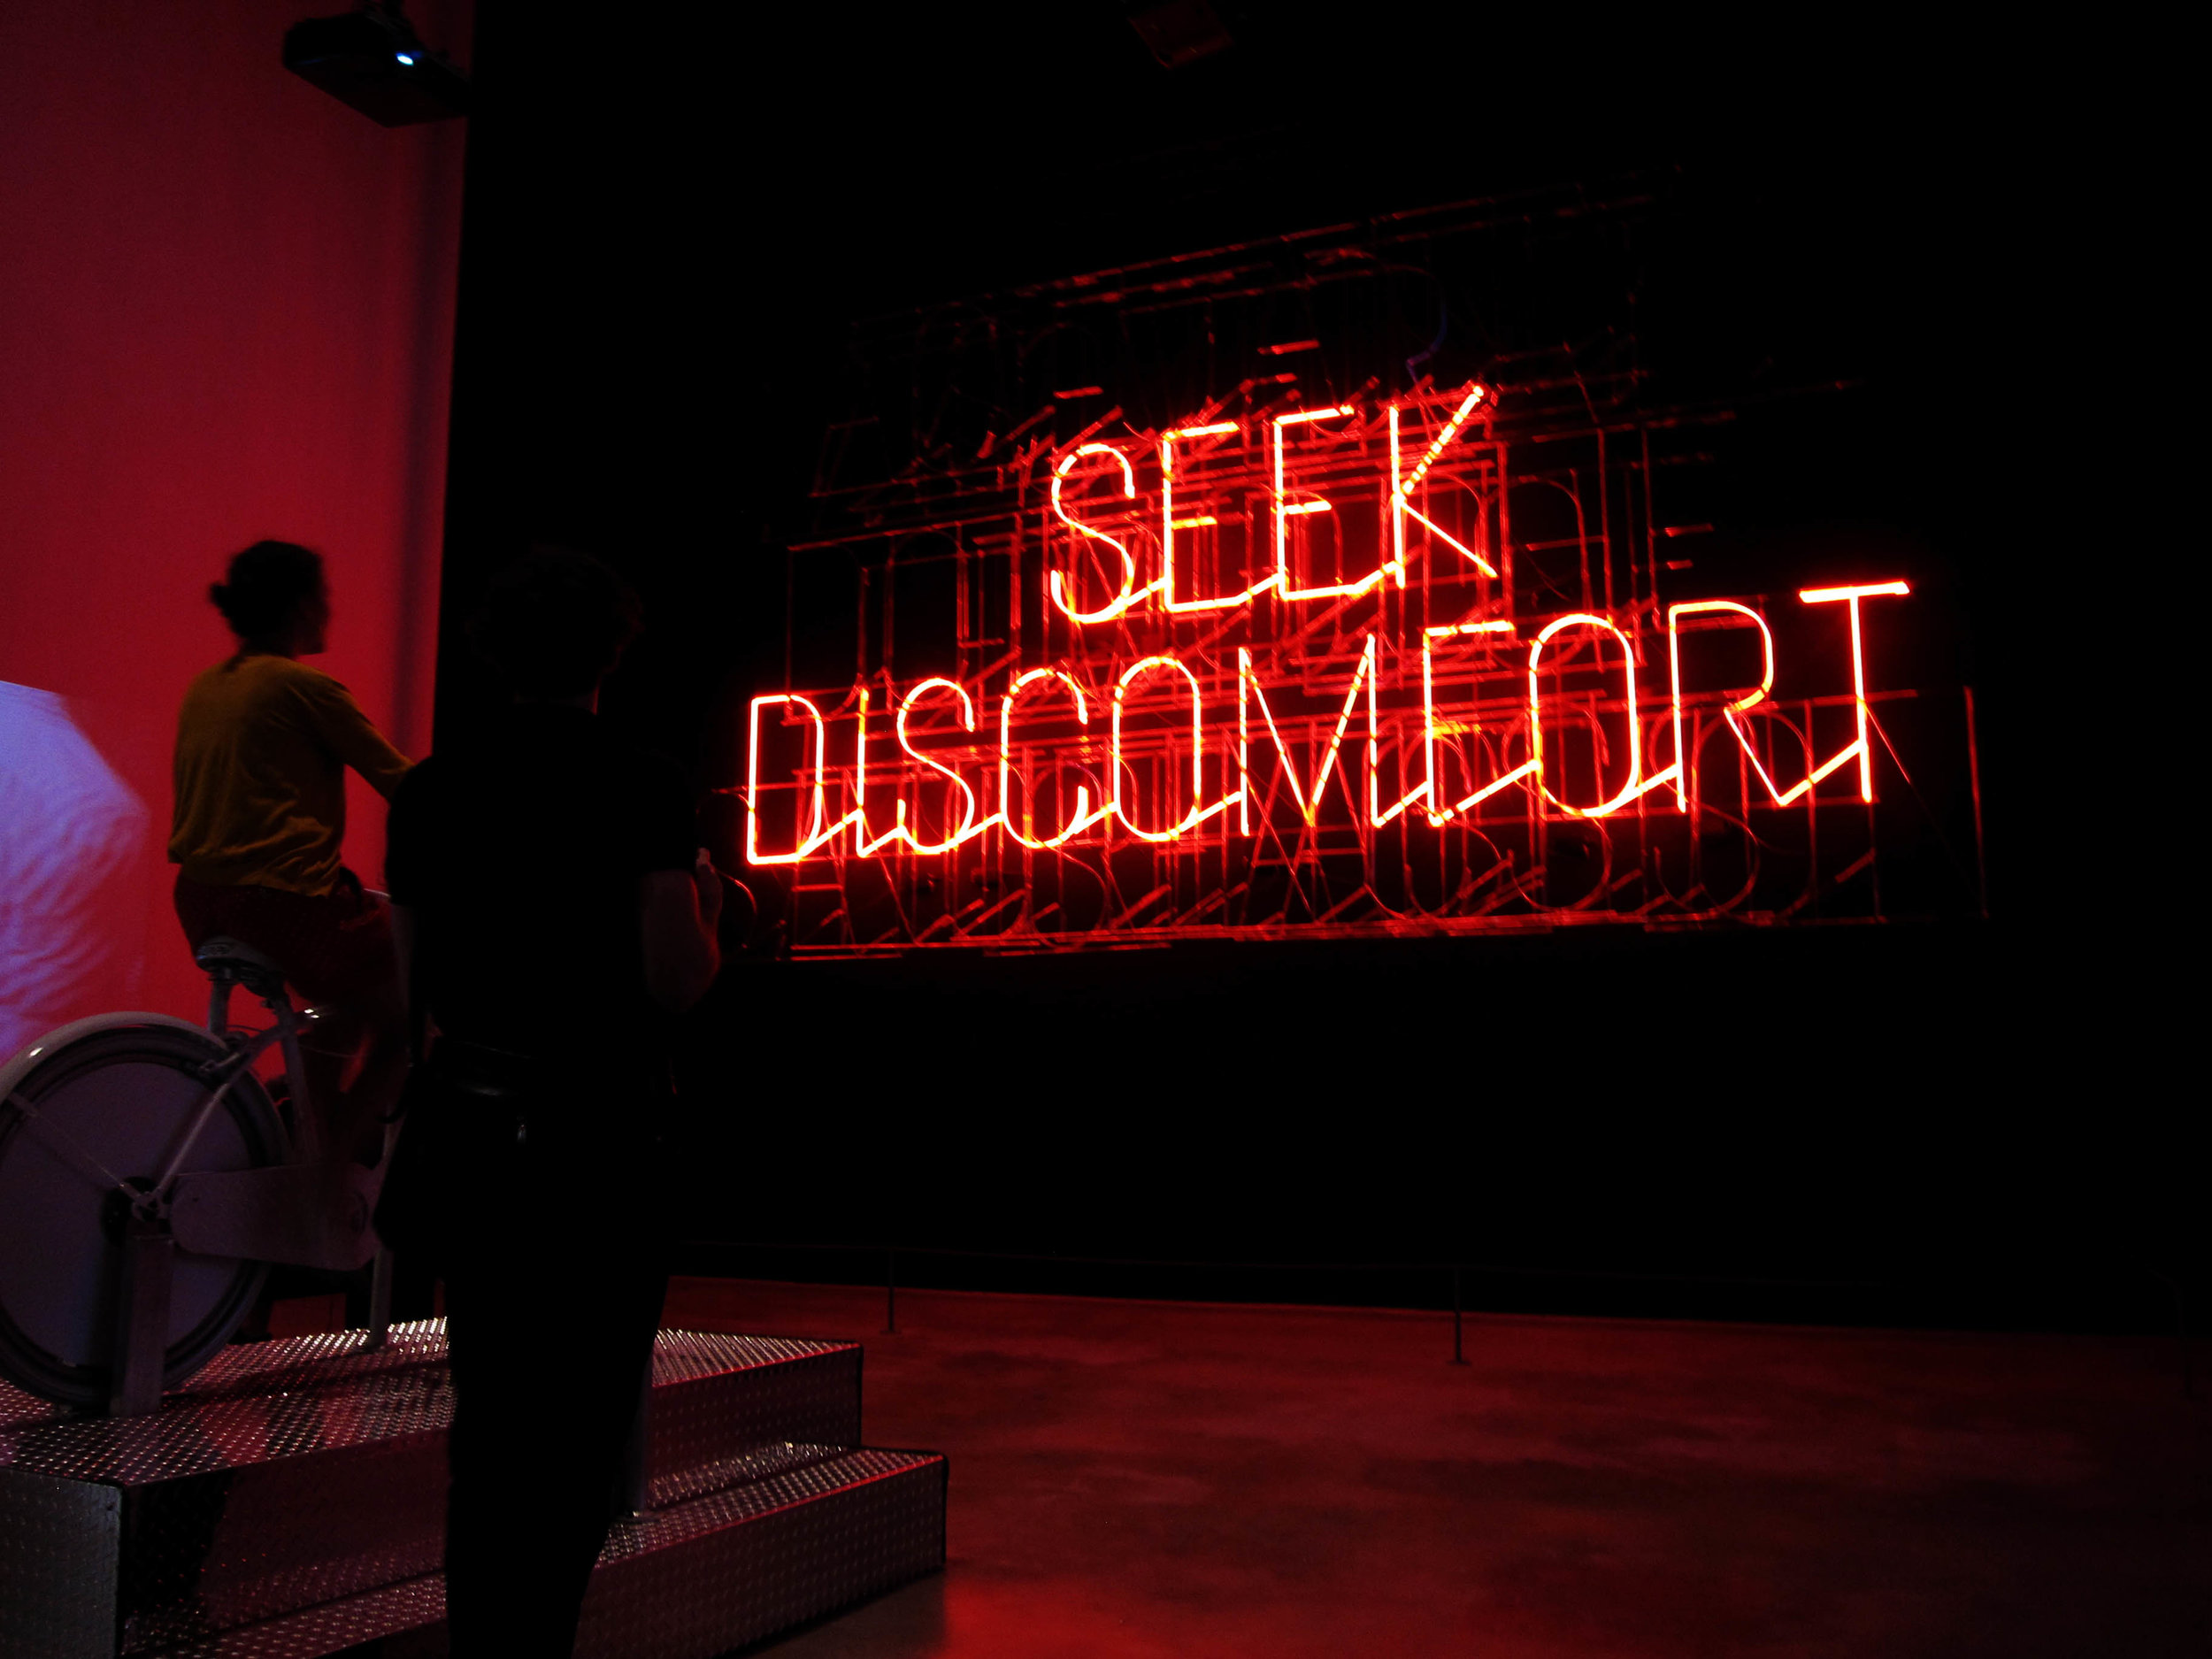 """Stefan Sagmeister, """" The Happy Show, installation view view,"""" 2012 at the Institute of Contemporary Art Philadelphia. Photo Cred: Jacque Donaldson"""